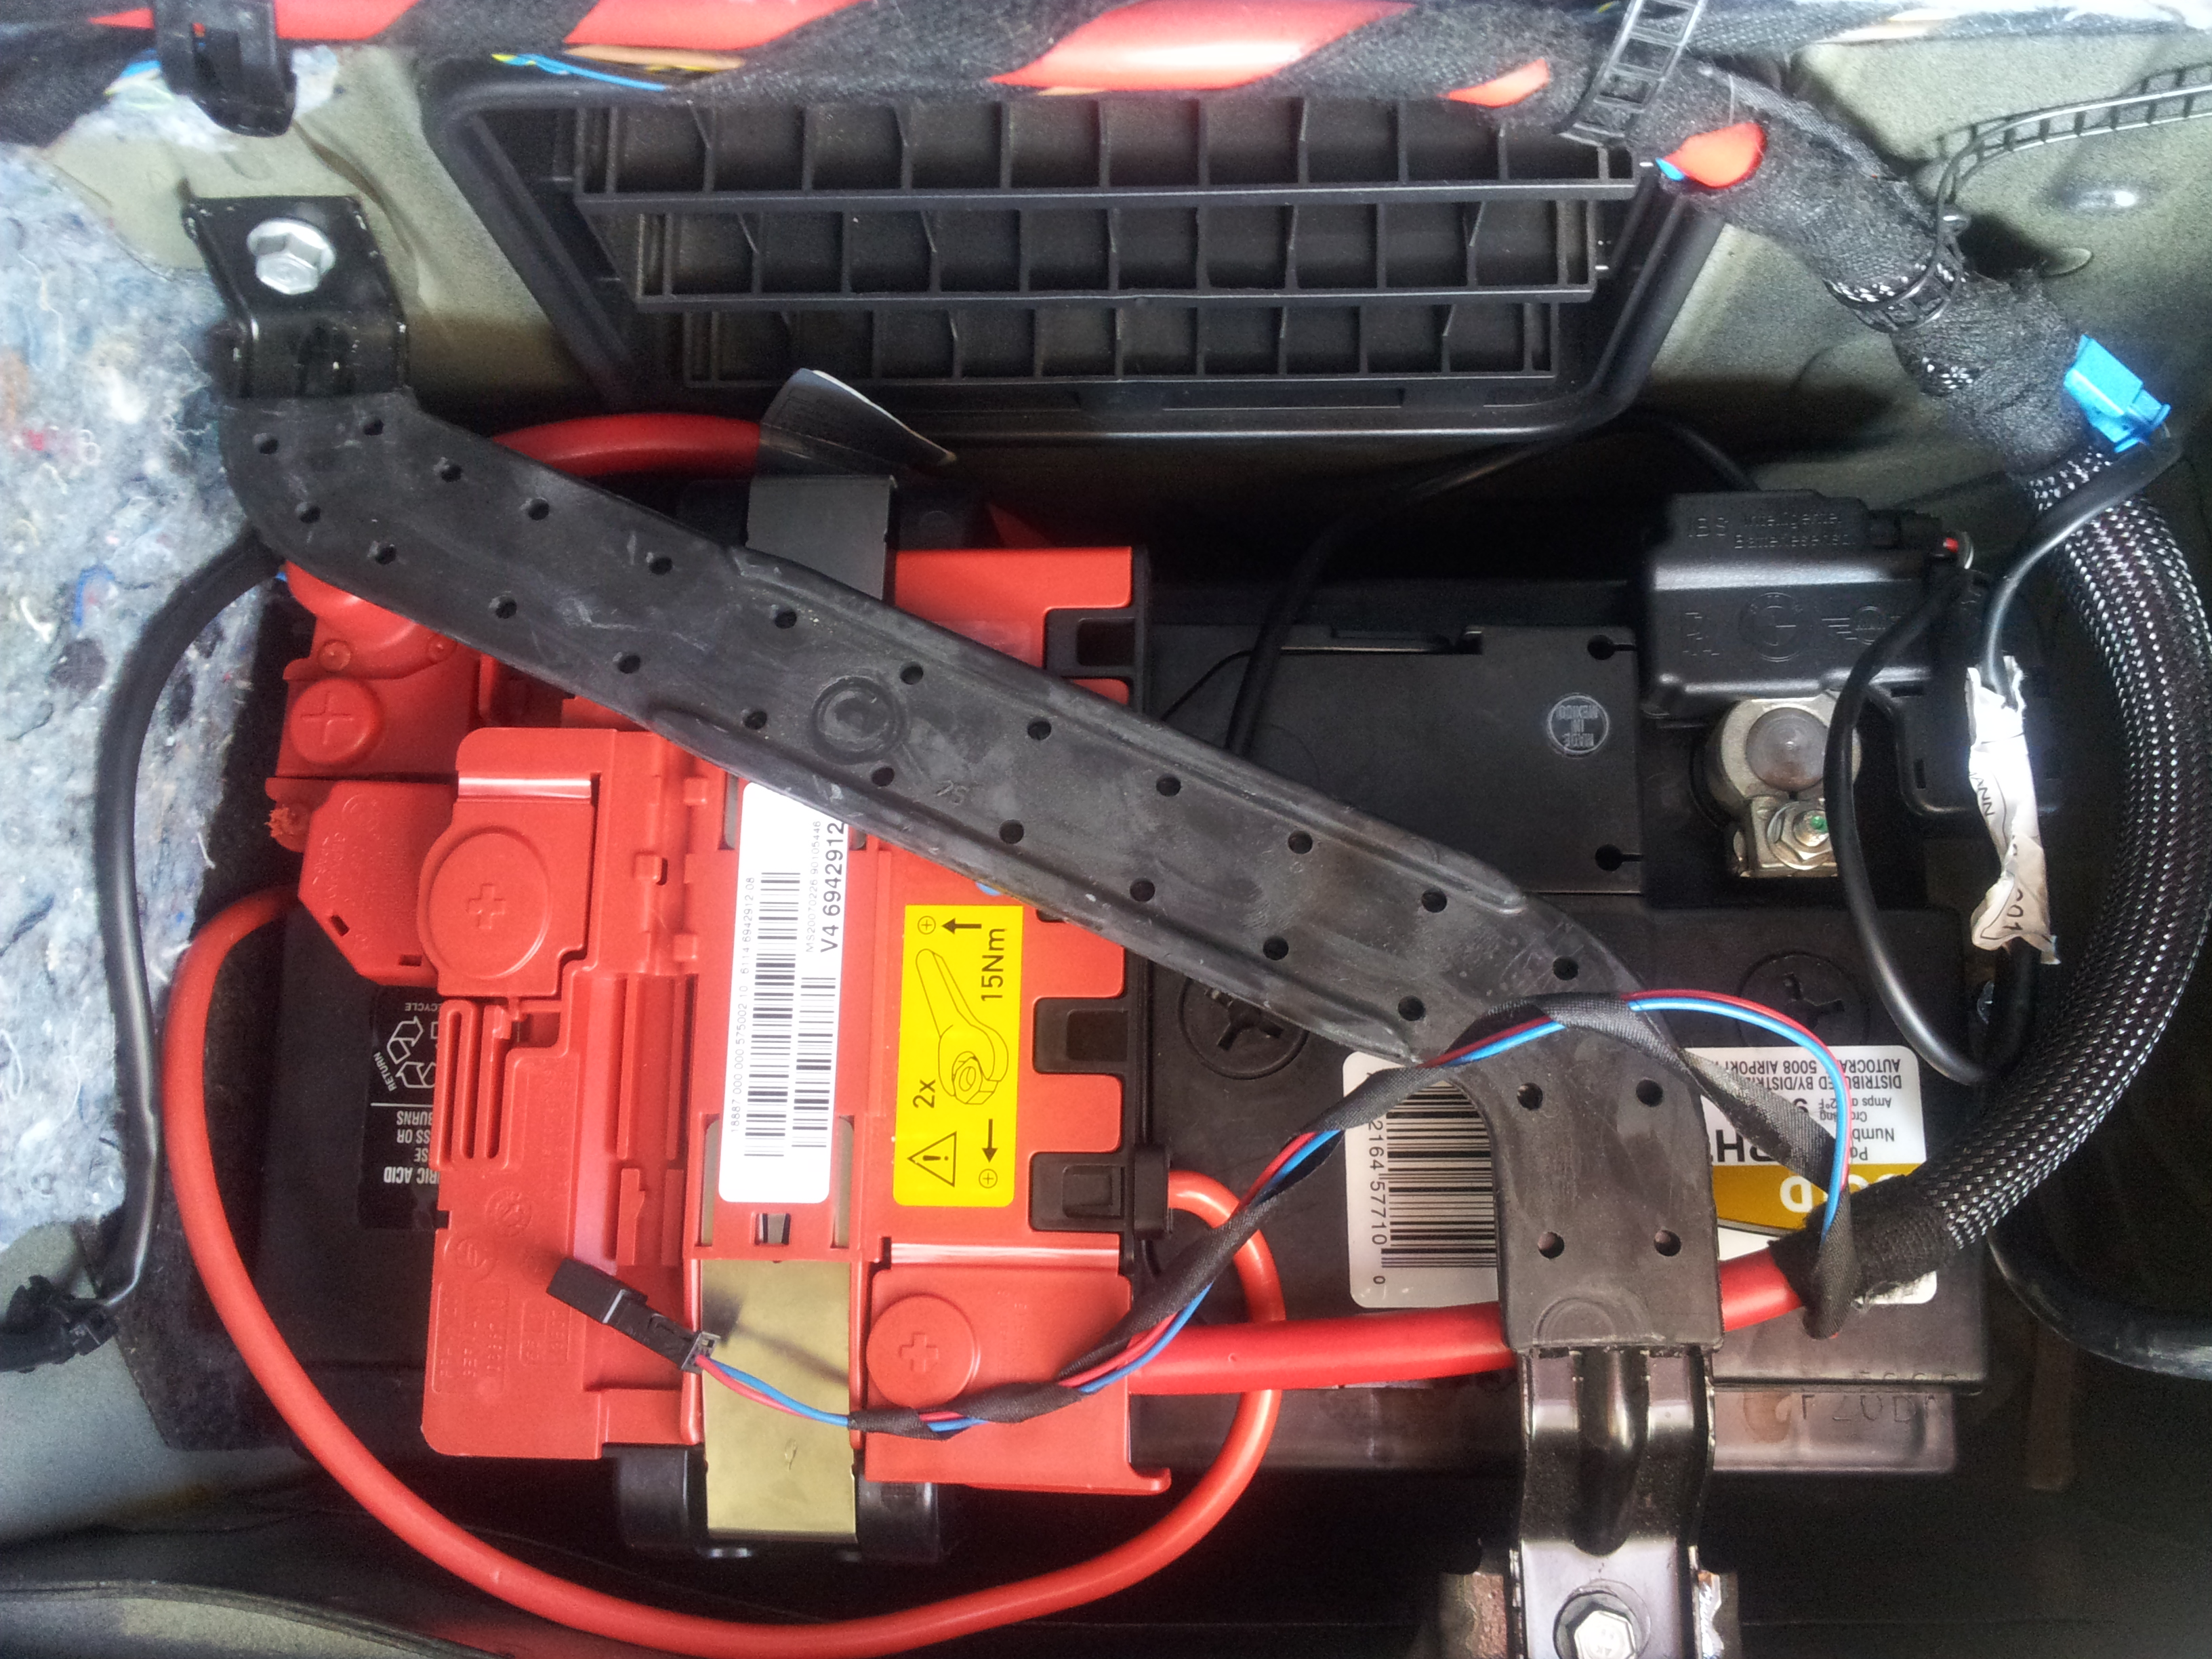 similiar x5 battery location keywords 2006 bmw x5 battery also 2008 bmw x5 fuse box diagram on fuse box